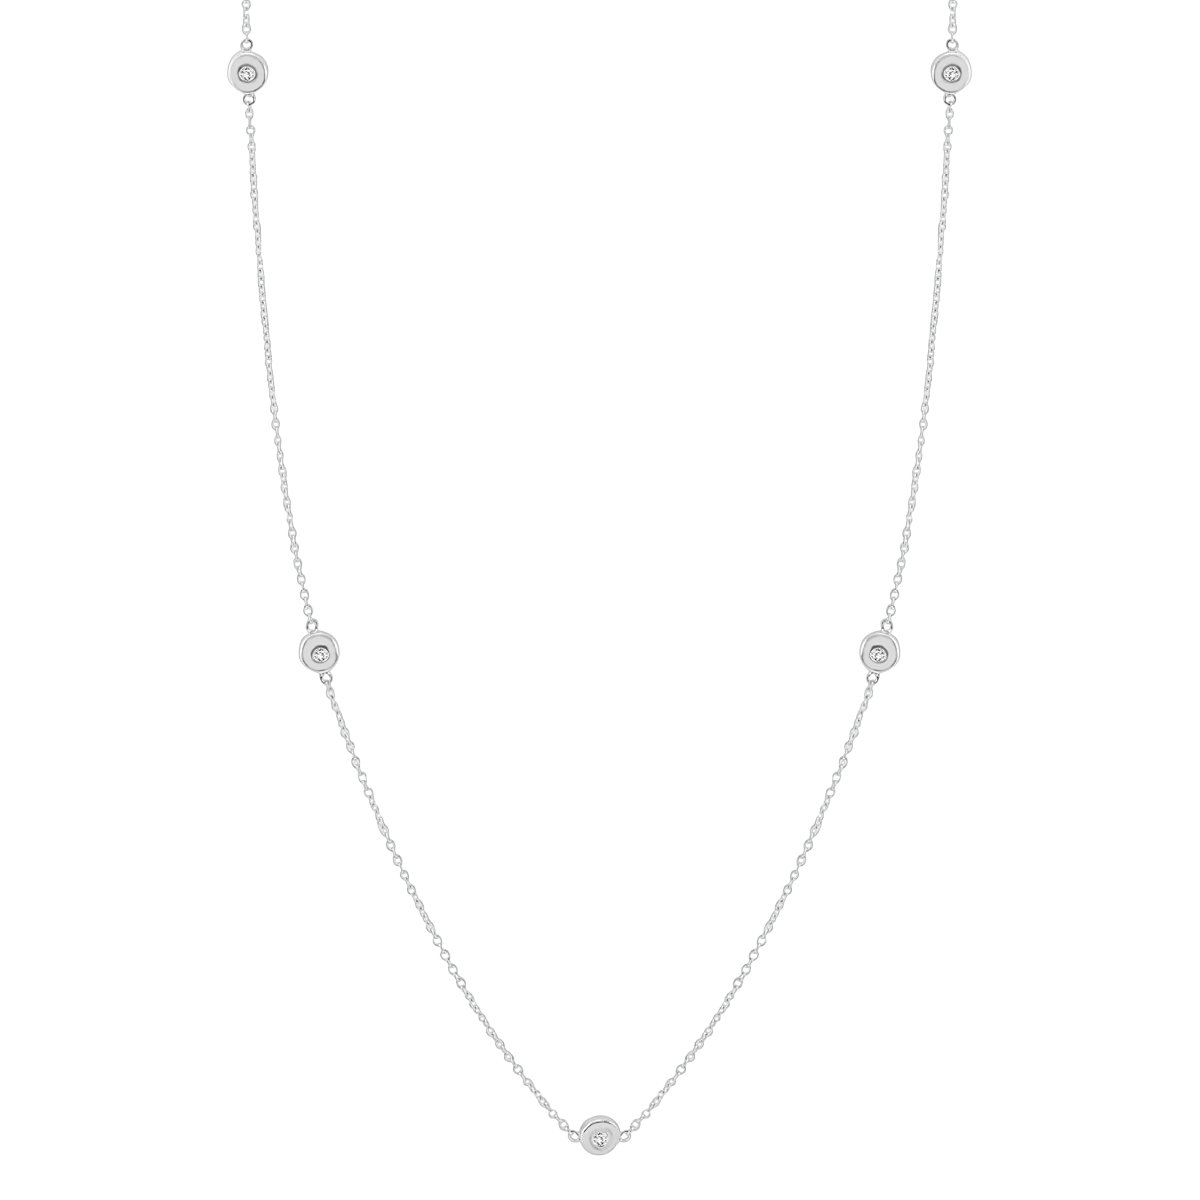 1/10 Carat 36 Inch Diamond Necklace in .925 Sterling Silver